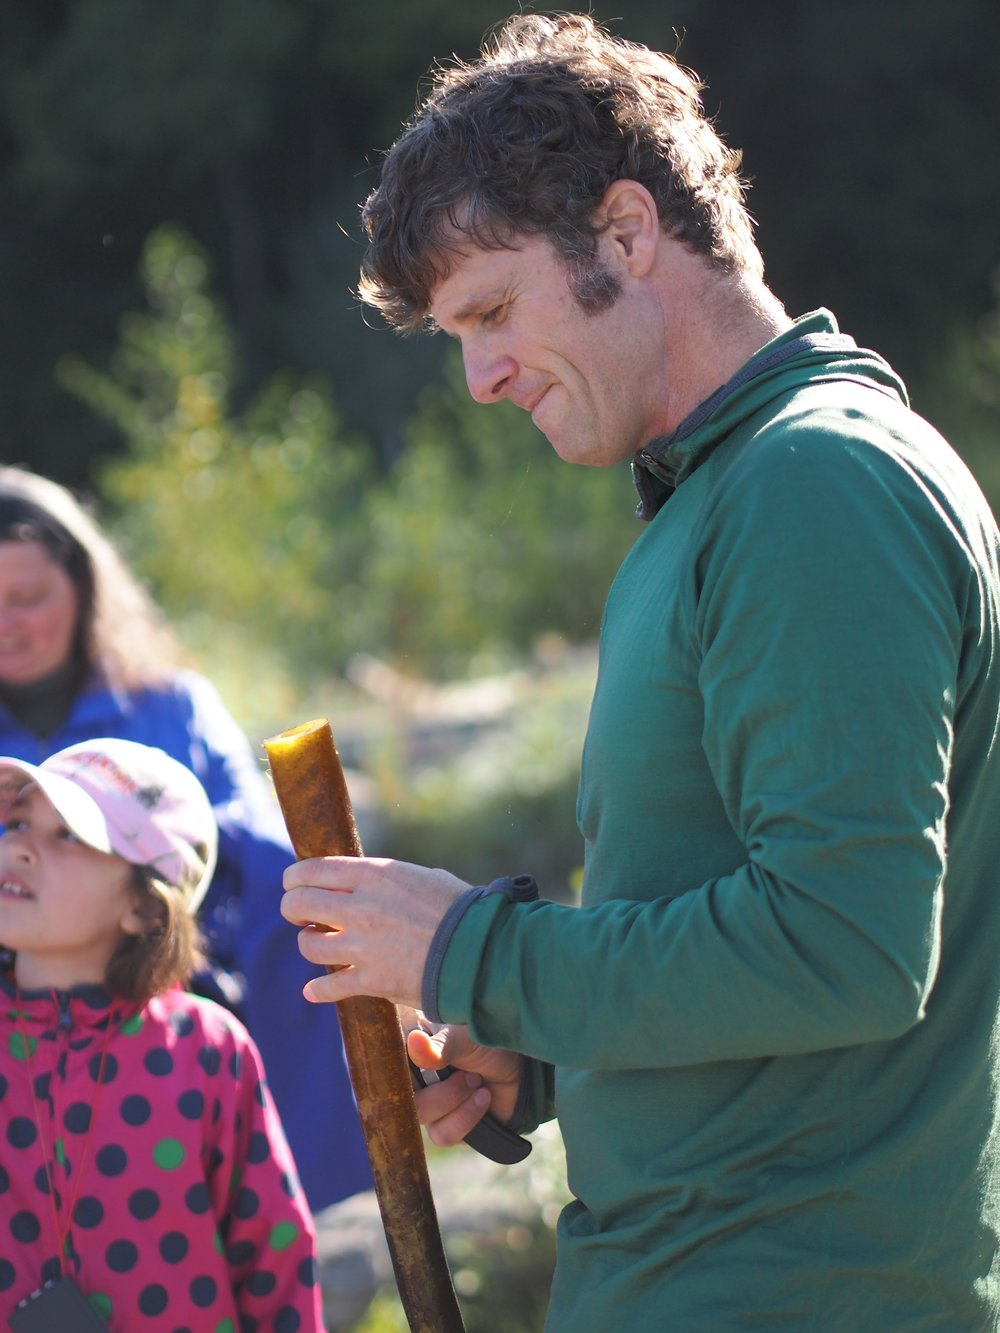 Making a sea kelp didgeridoo with students at Seahurst Park in Burien